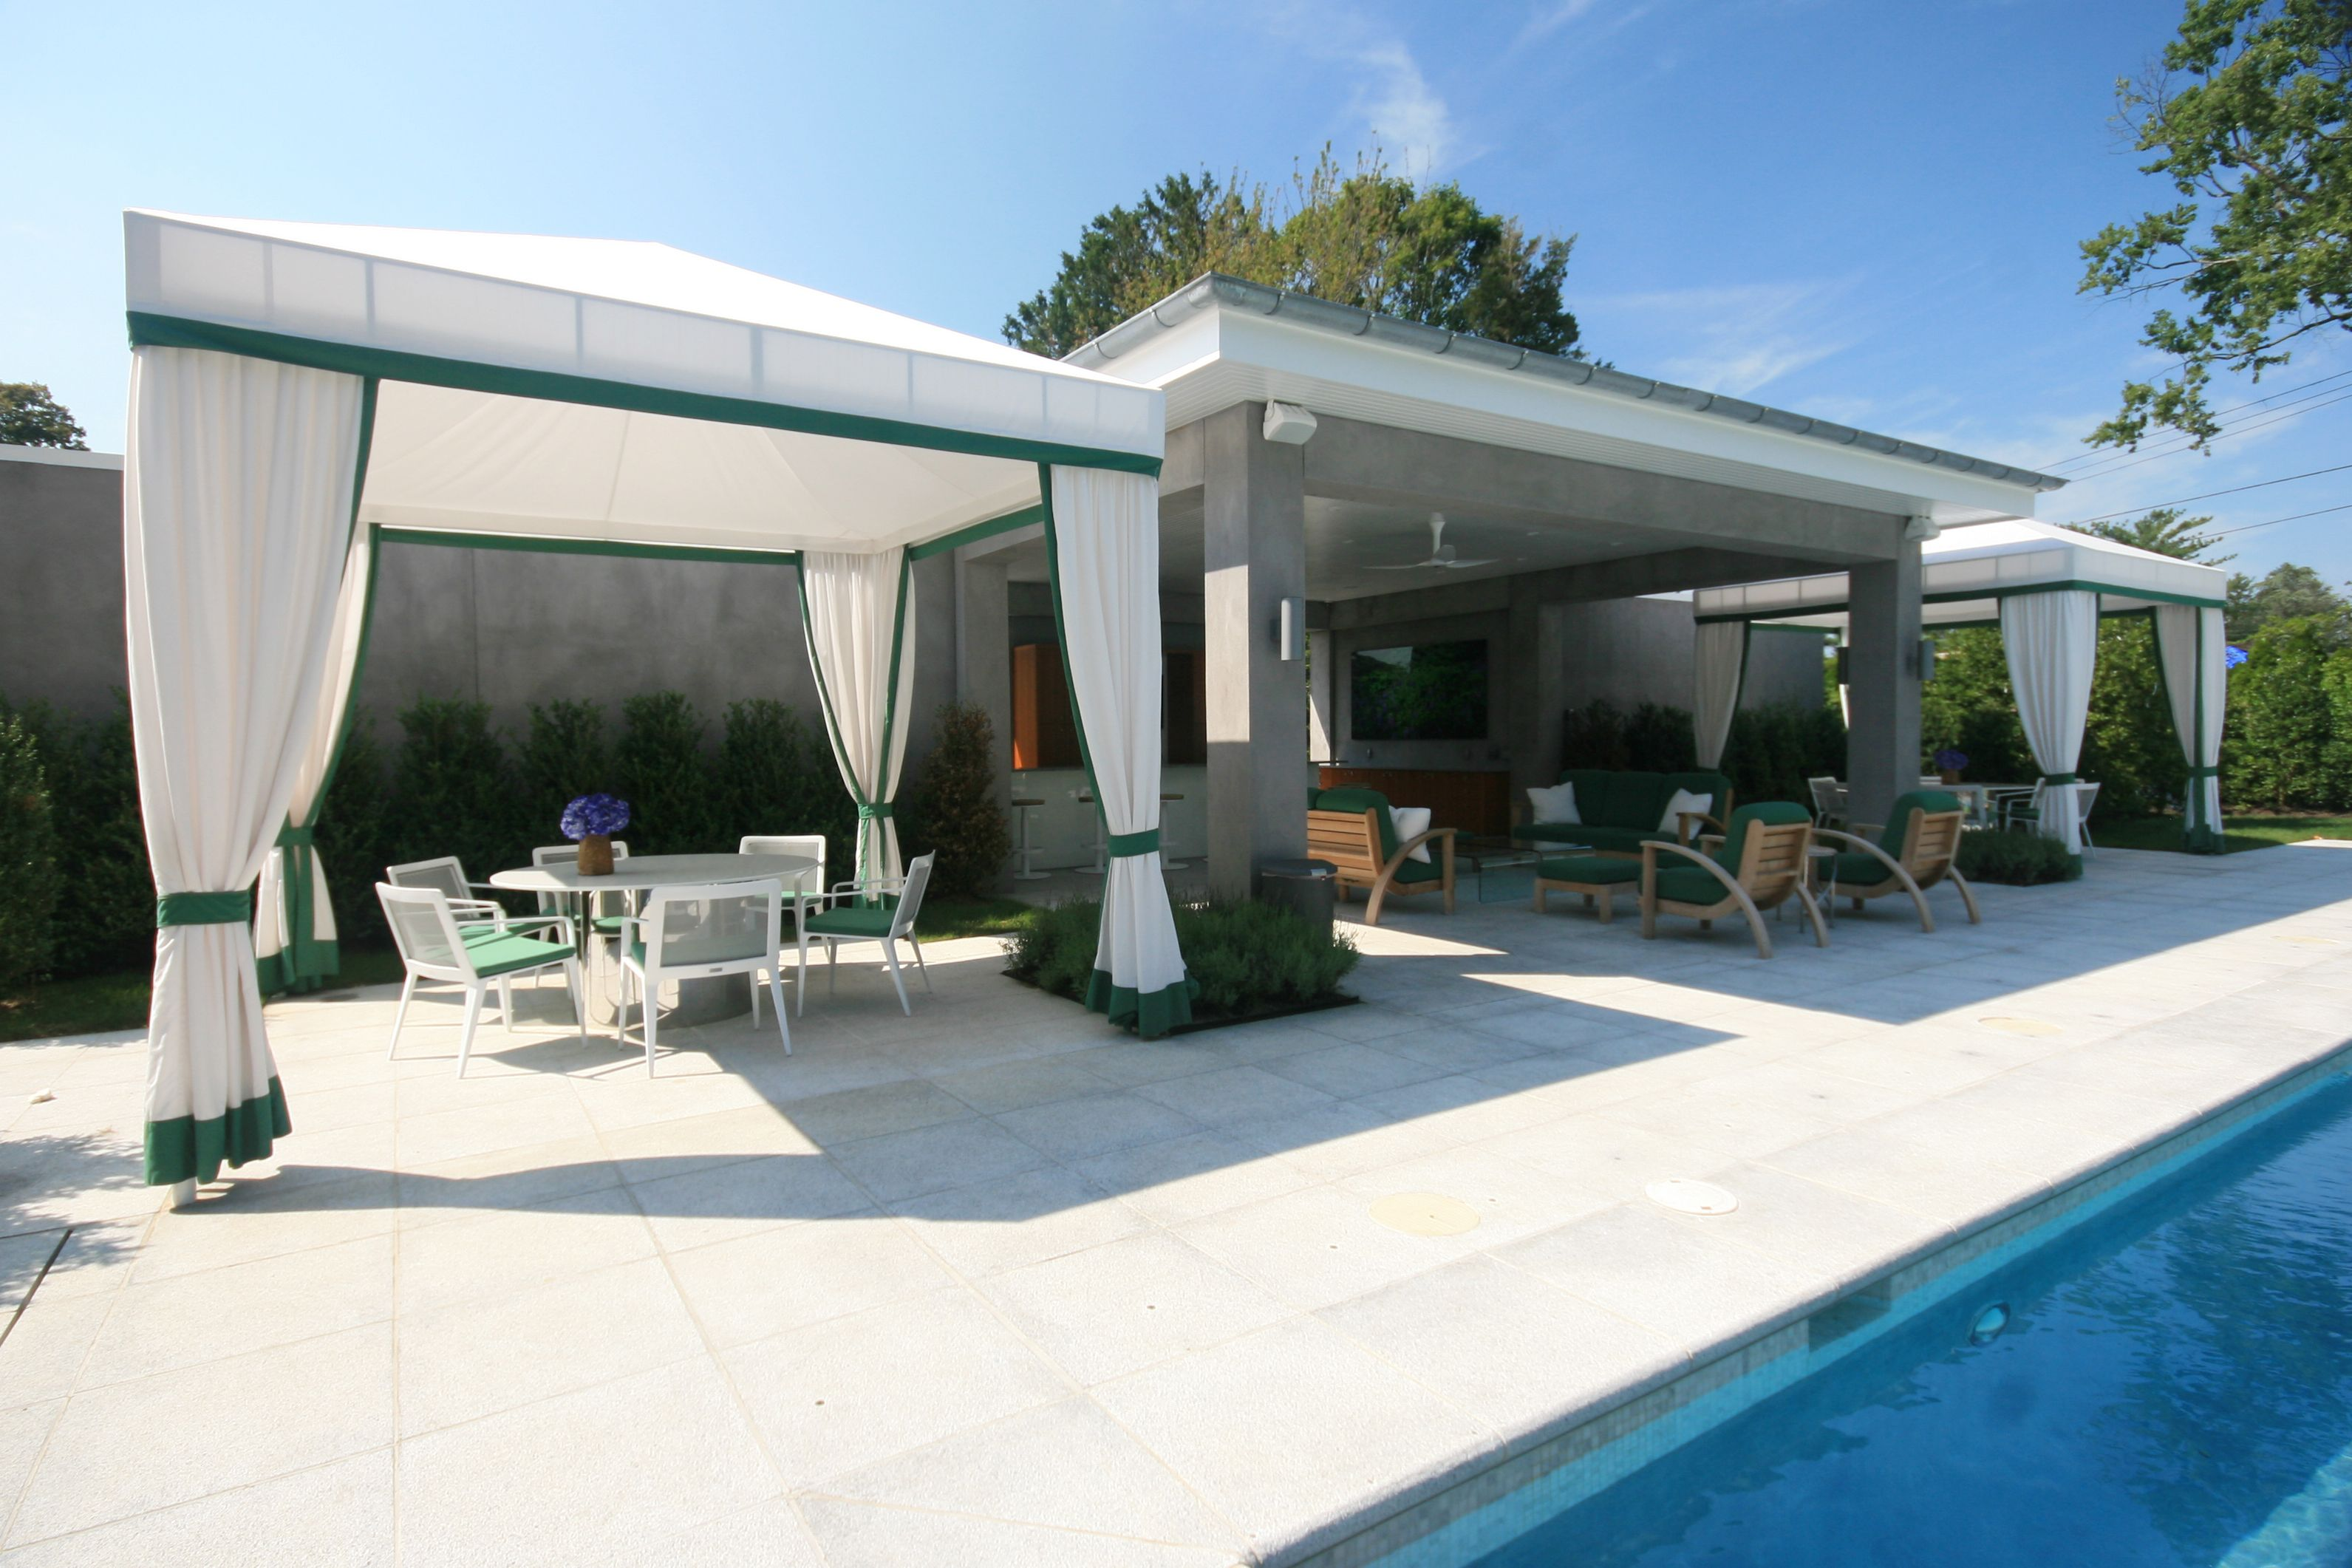 Beautiful Poolside Canopies Designed And Fabricated By Hudson Awning Sign Co Canopy Design Canopy Shade Canopy